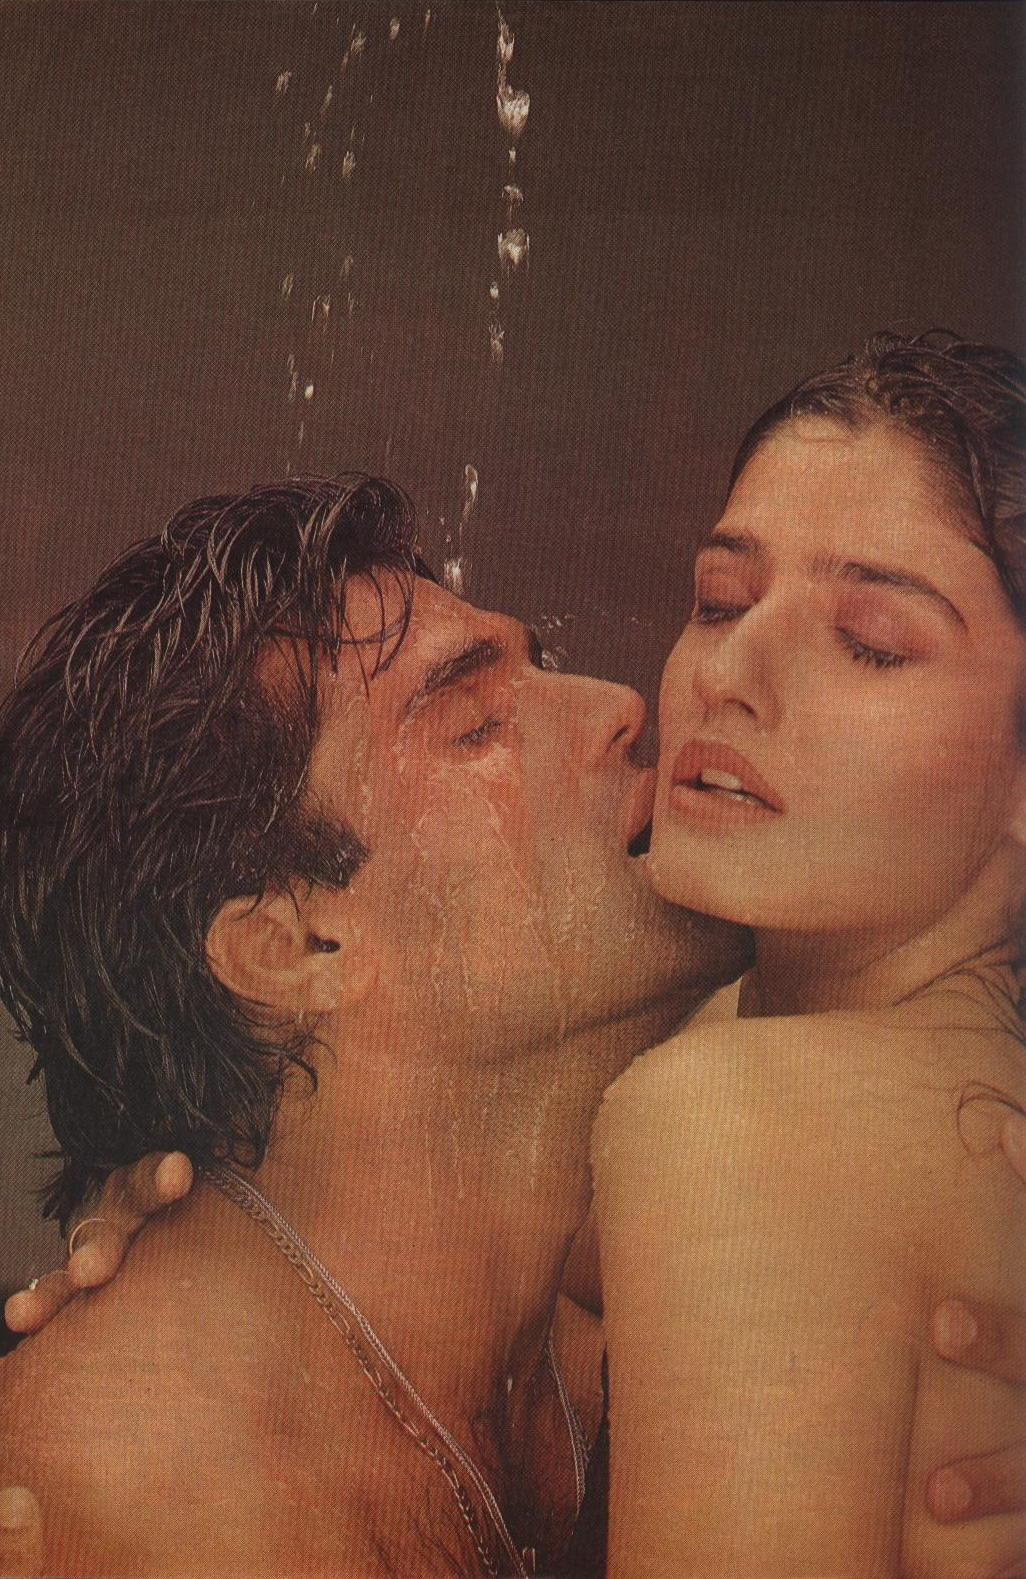 Raveena Tandon Hottest Seiest Videos From Various Movies Shoots